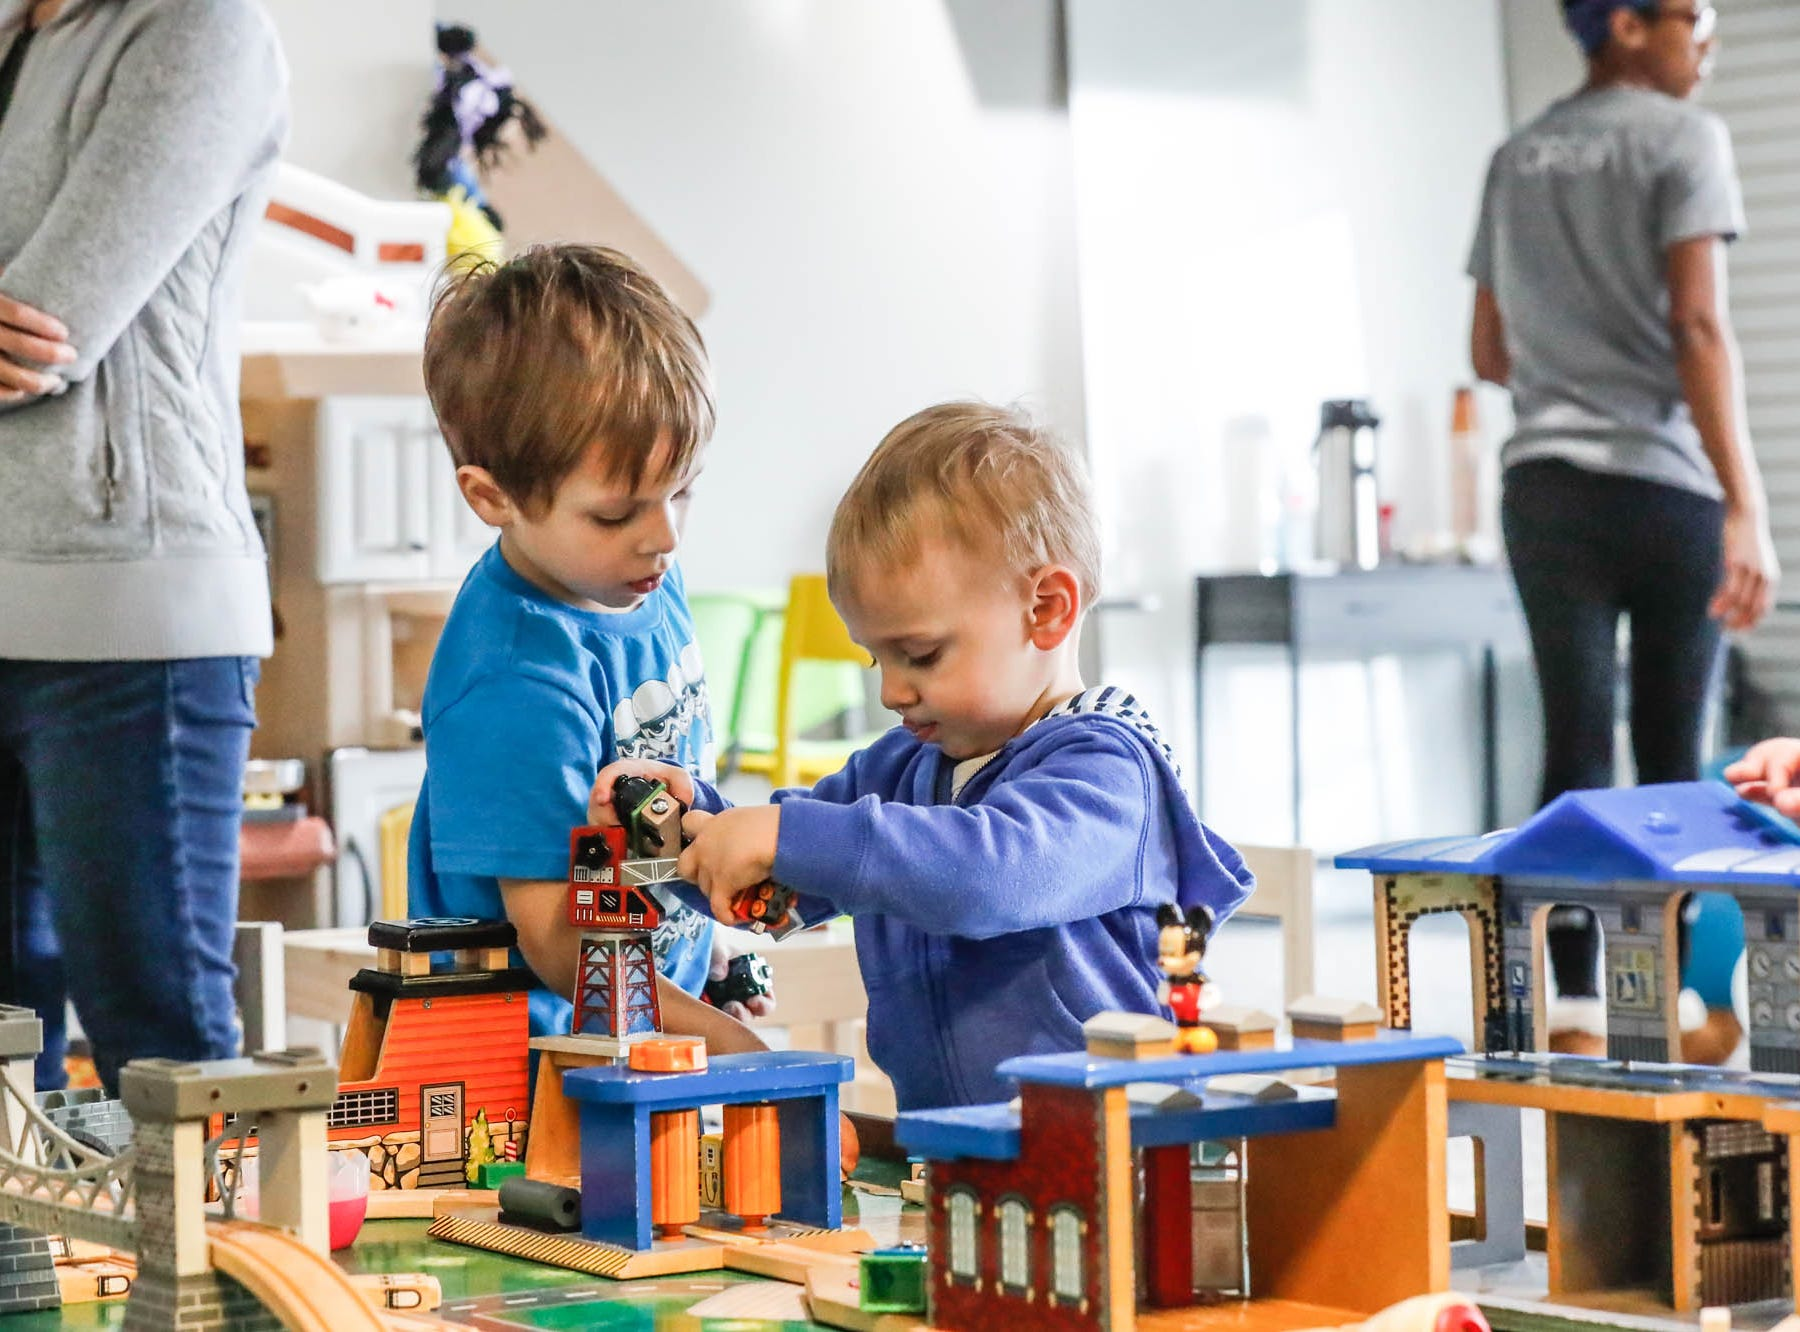 Logan Lanuti, left, and Russell Soucy play together at The Little Village Playroom, 9850 N. Michigan Rd, Carmel, Ind., on Tuesday, Feb. 5, 2019.